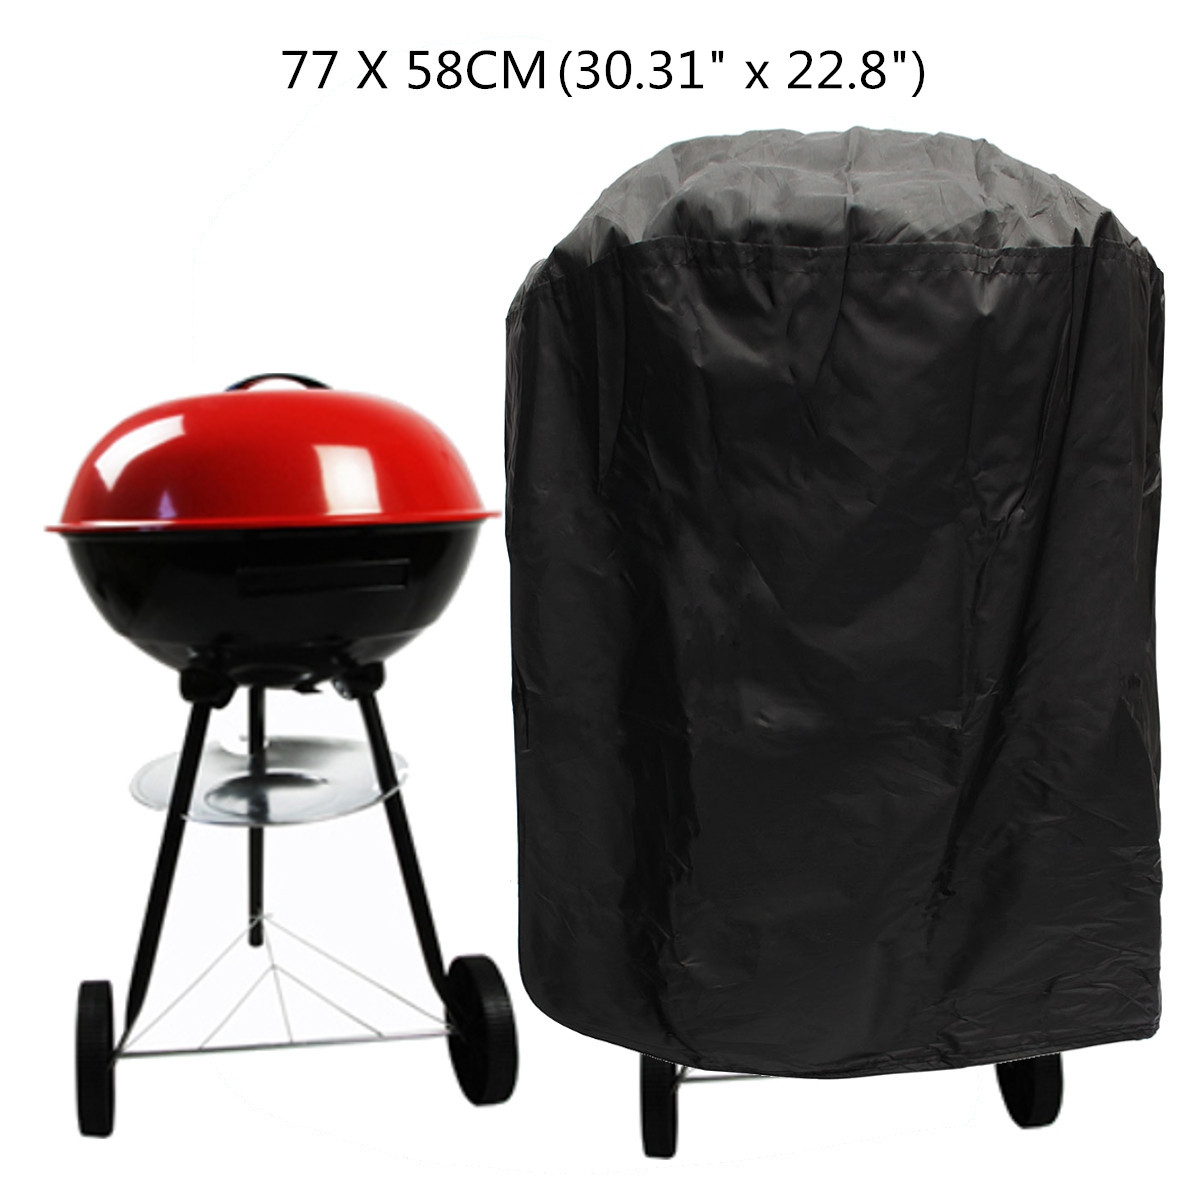 HEAVY DUTY LARGE ROUND BBQ COVER OUTDOOR WATERPROOF BARBECUE GRILL GAS